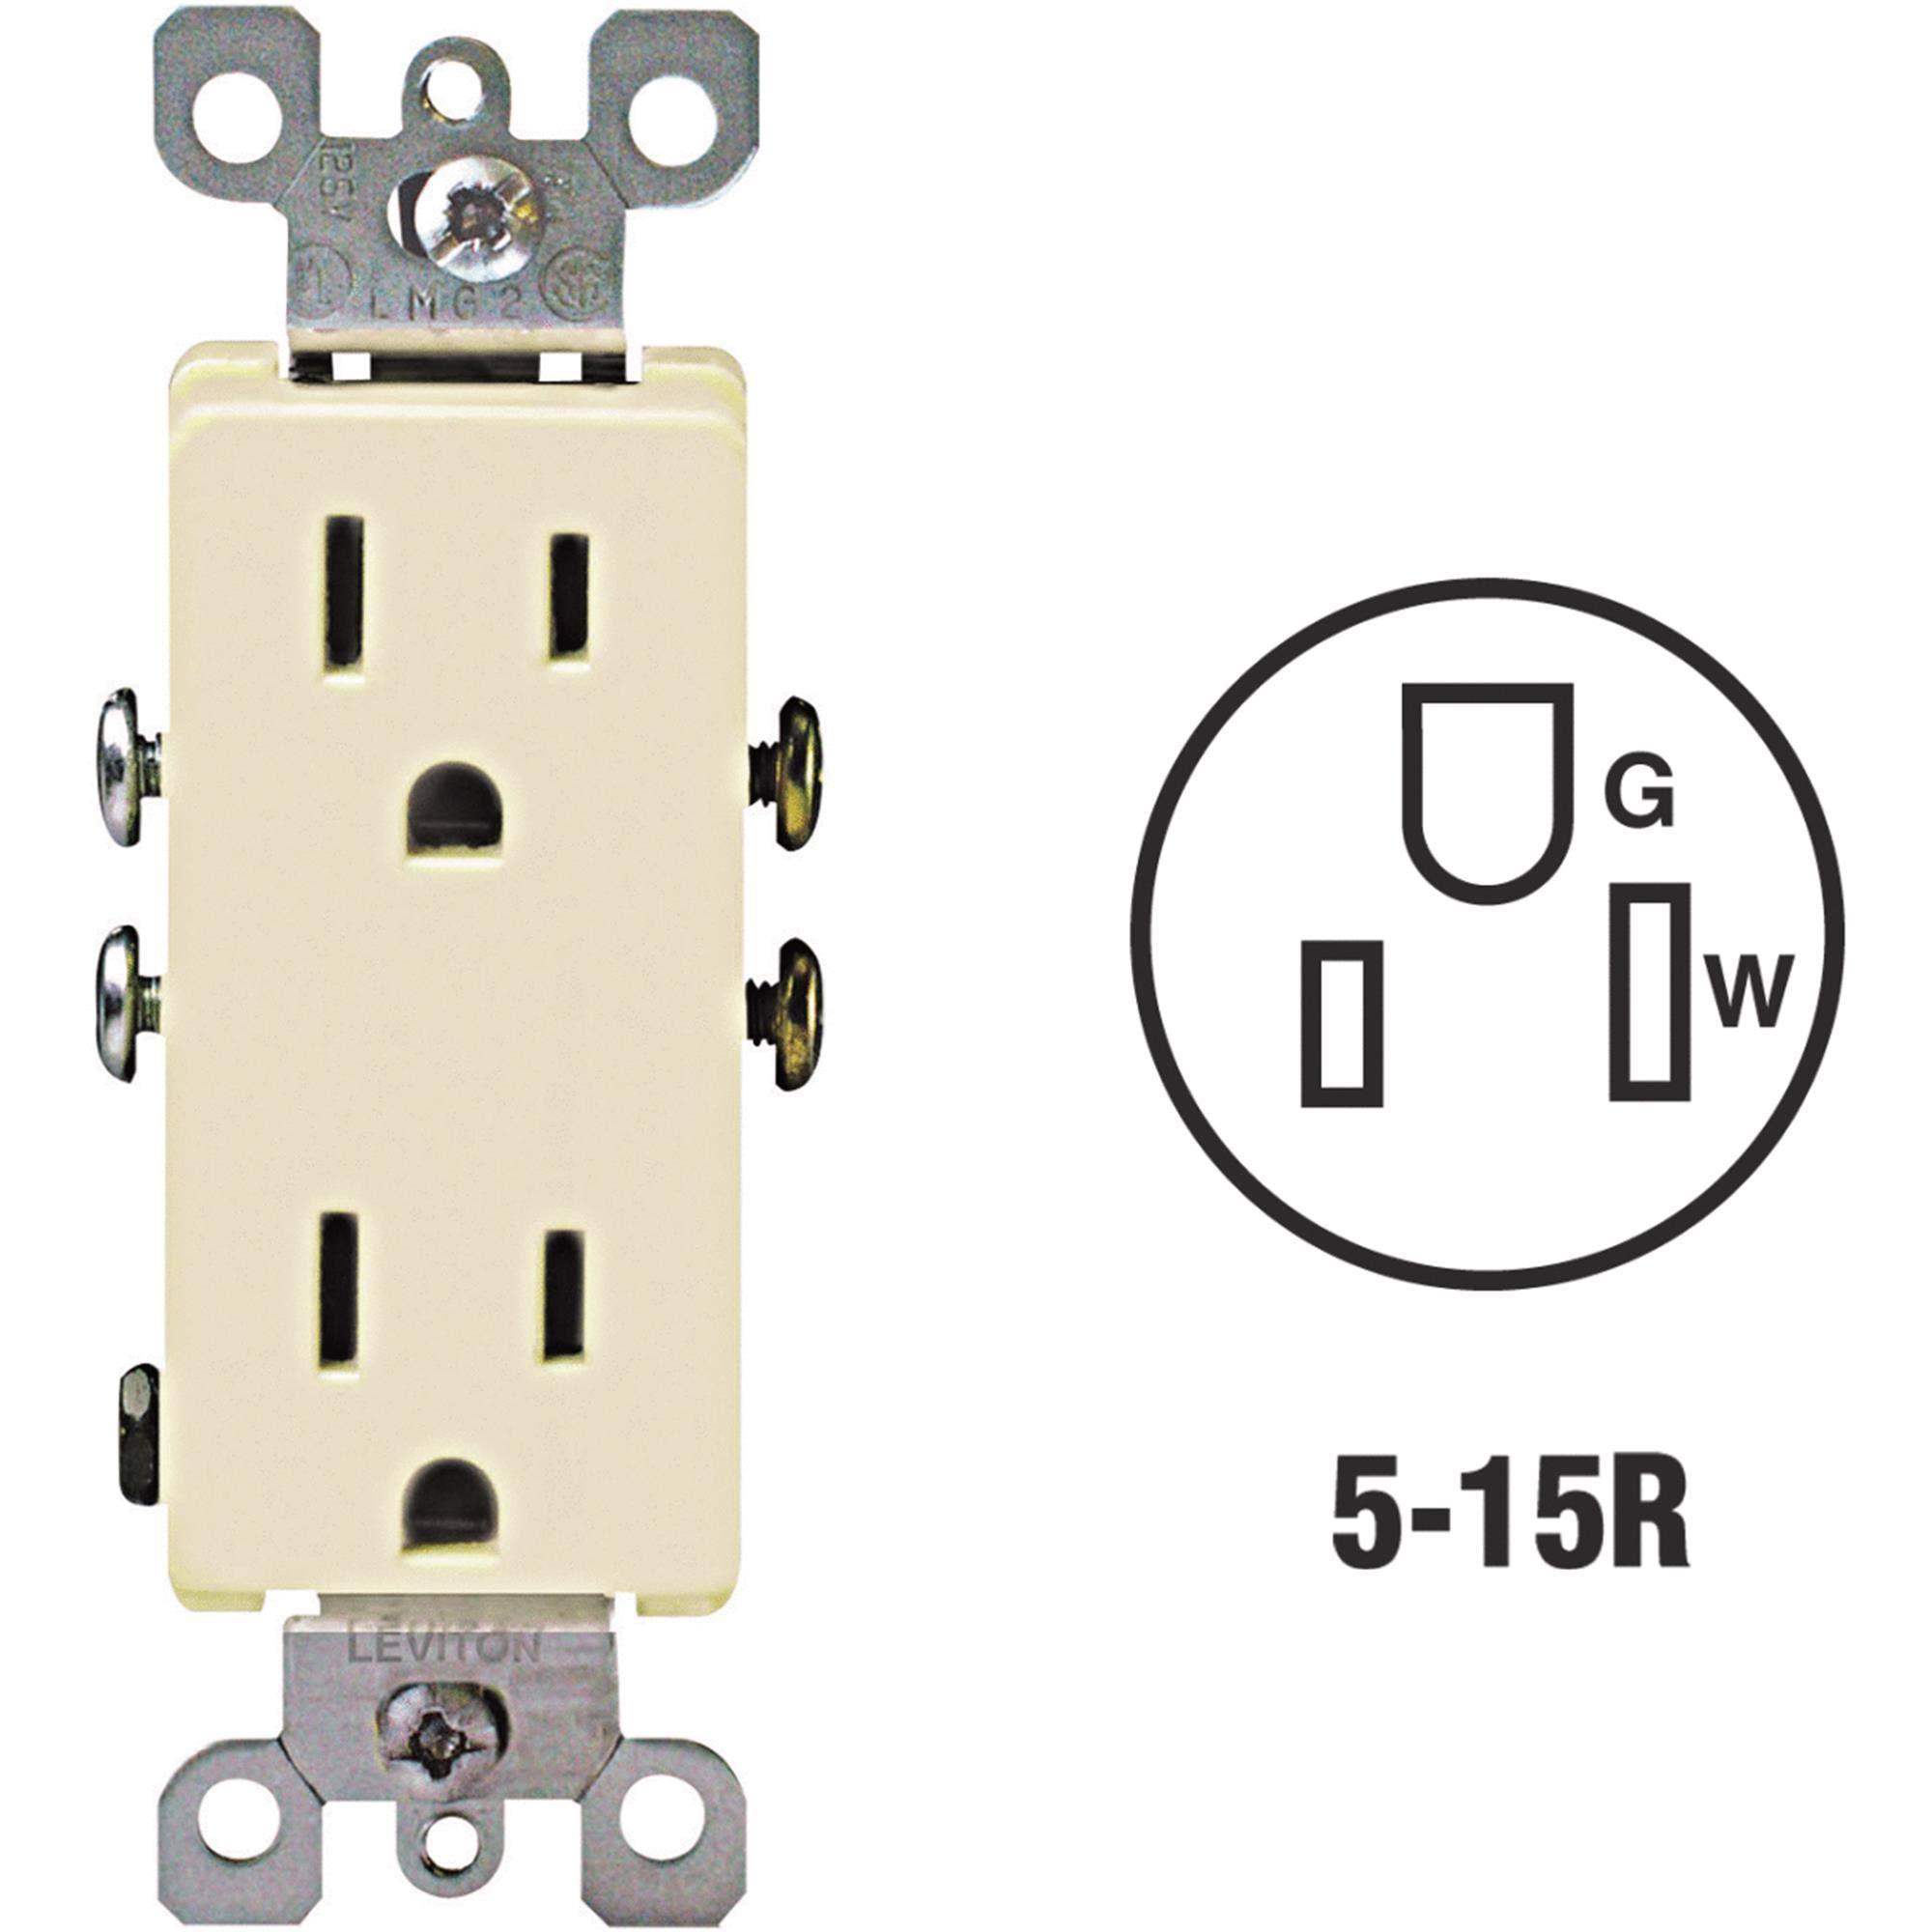 Leviton S01-05325-ISP Grounded Duplex Outlet